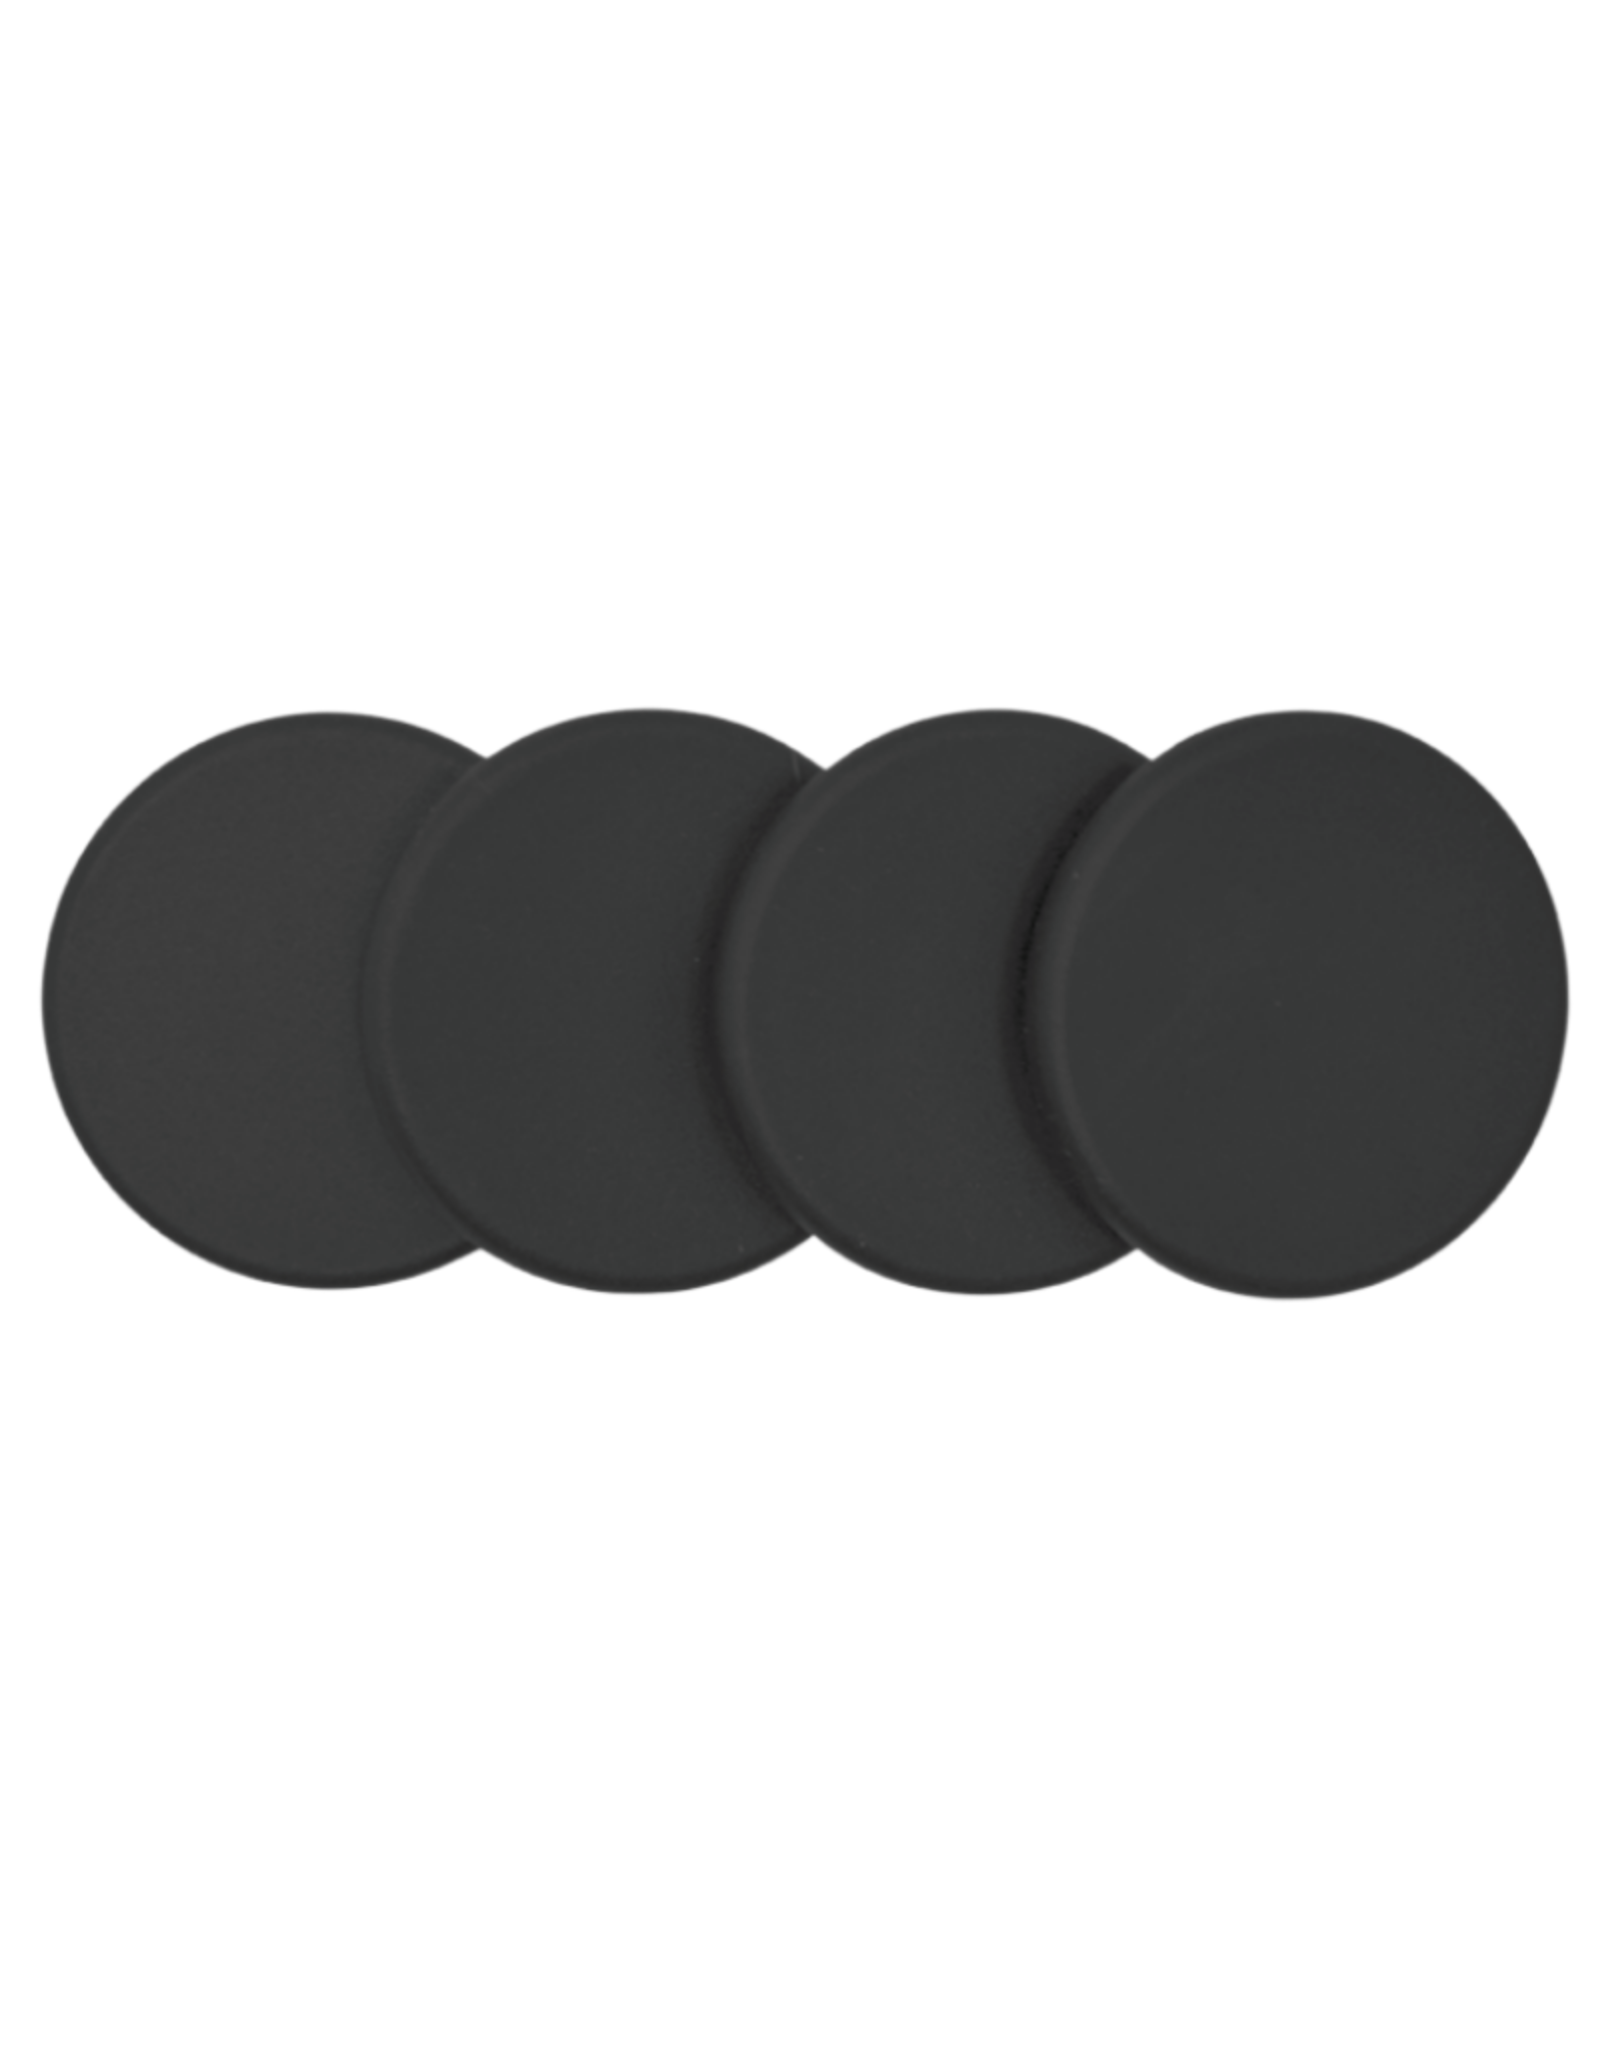 Place Board Leg Plugs – 1 Set of 4